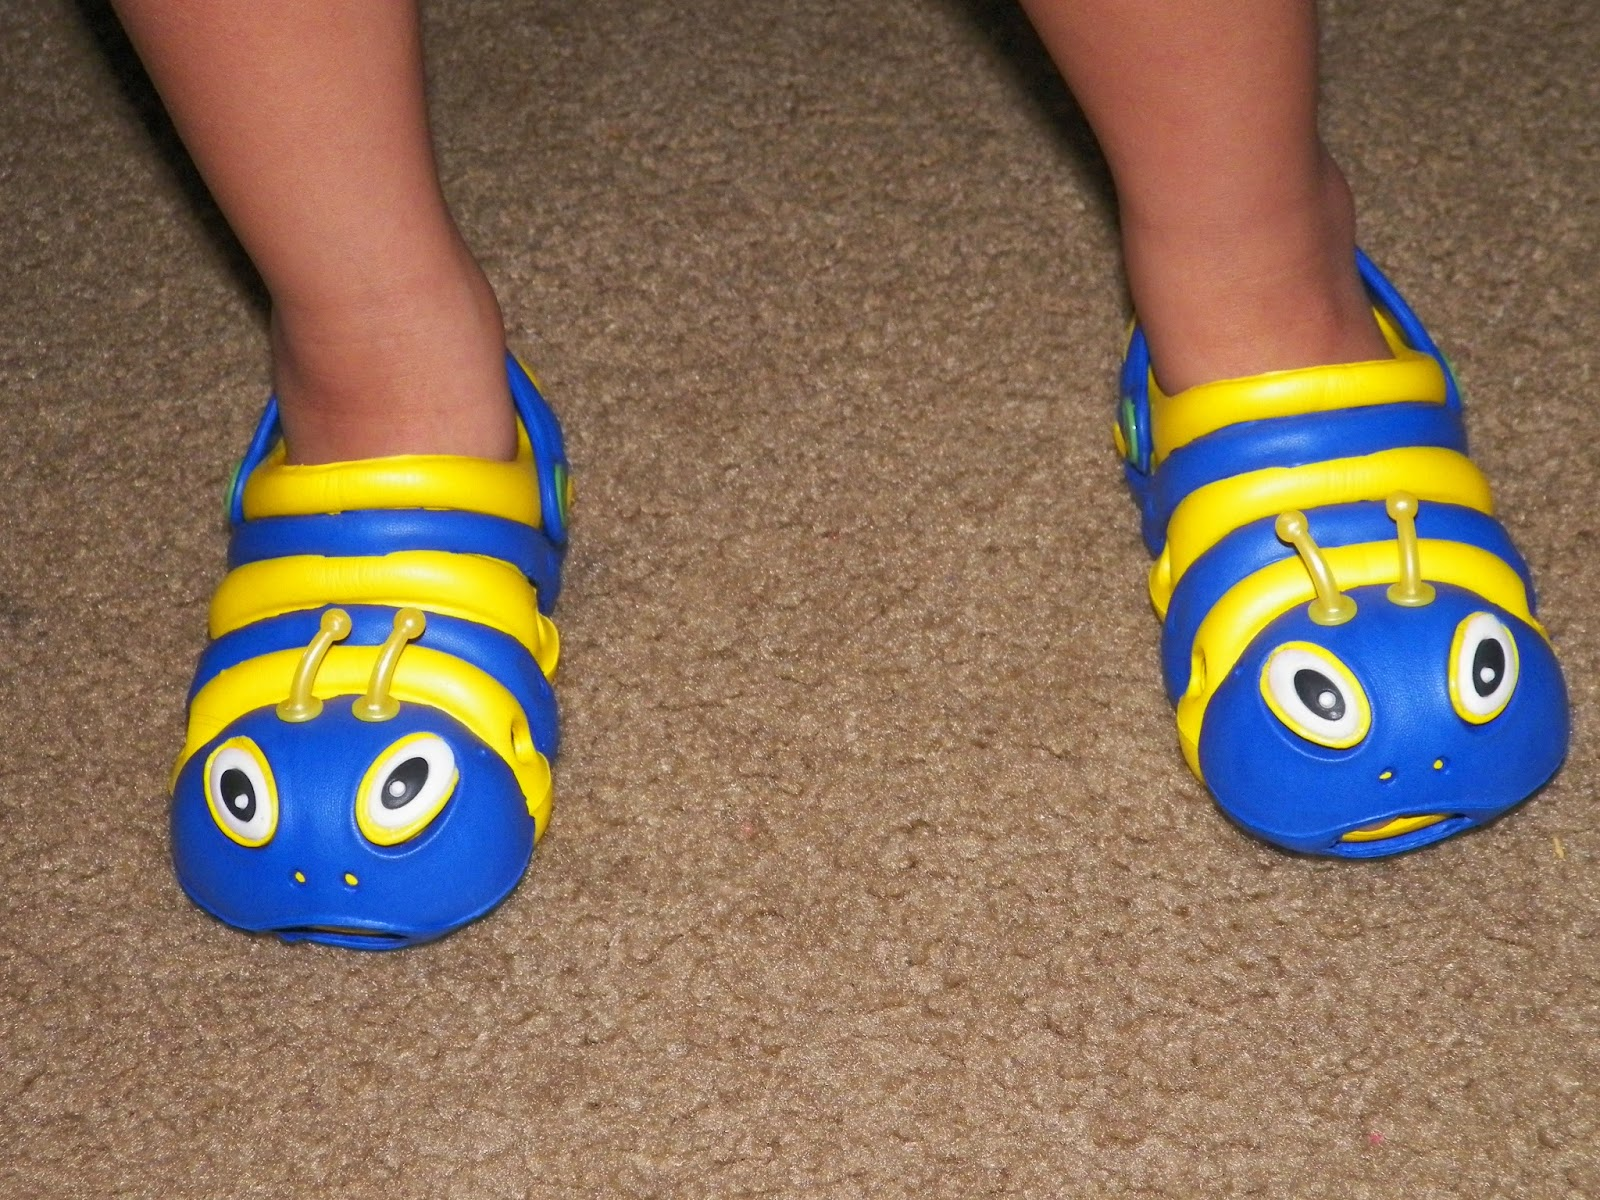 Catterpillar_Clogs_By_Clogstrom.jpg